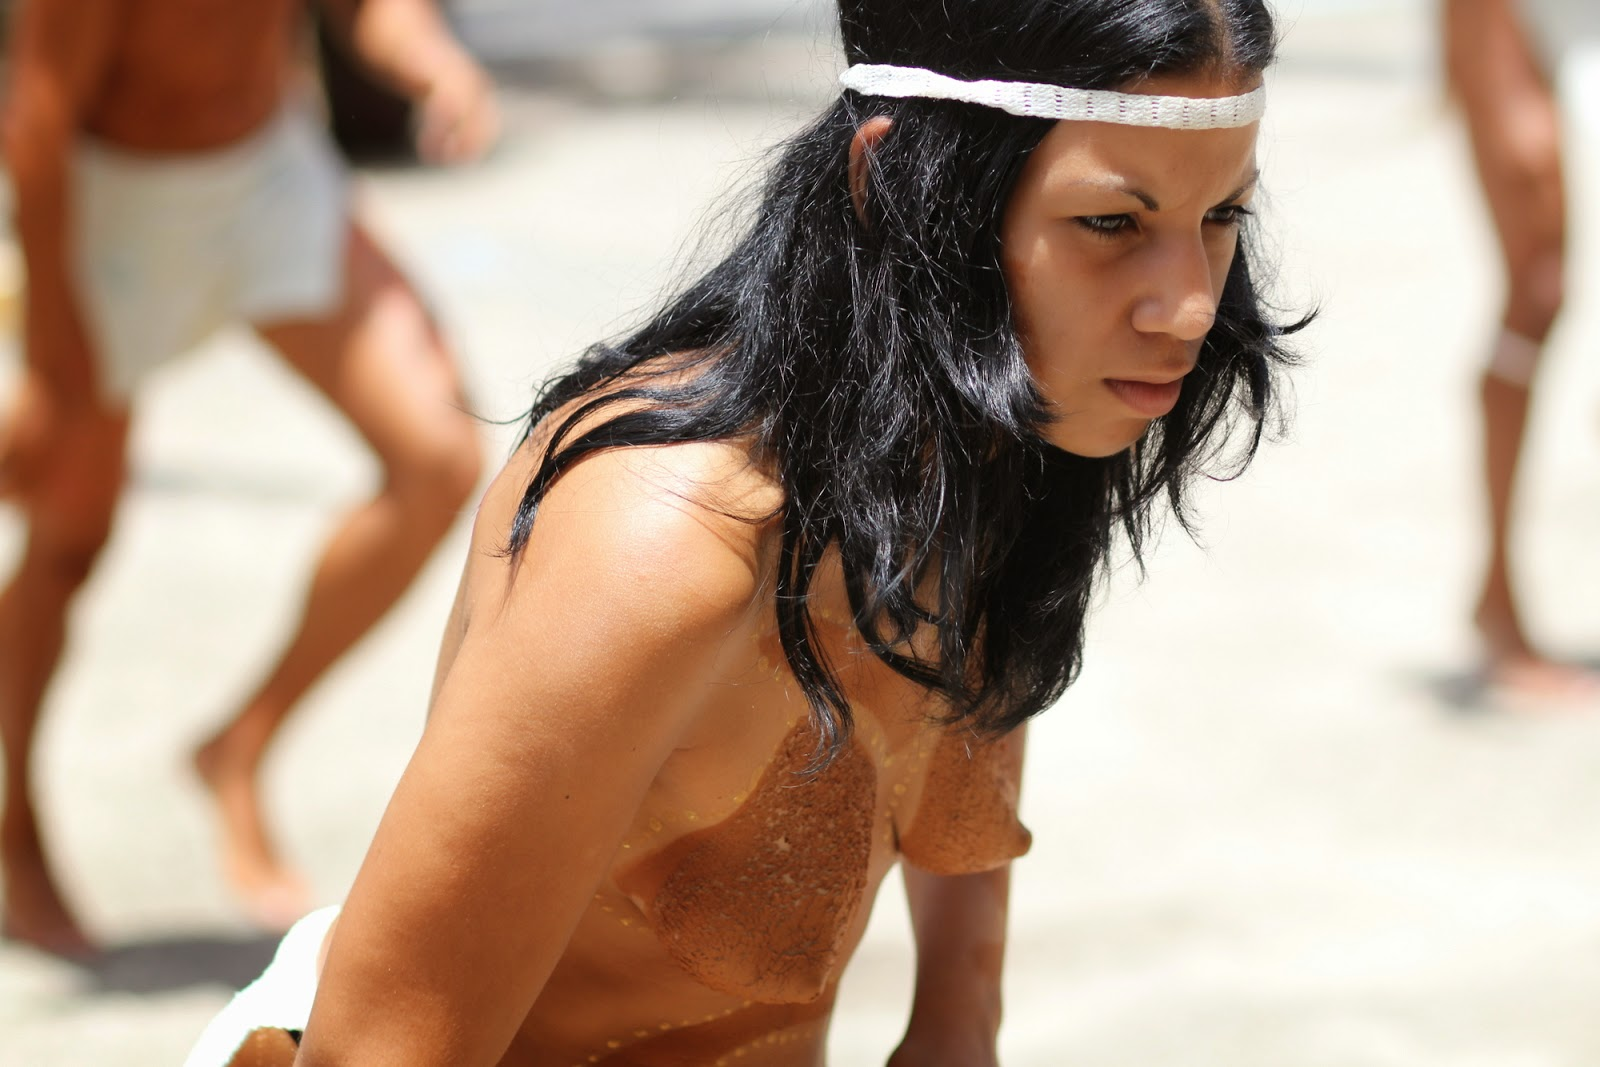 Nude Native American Women